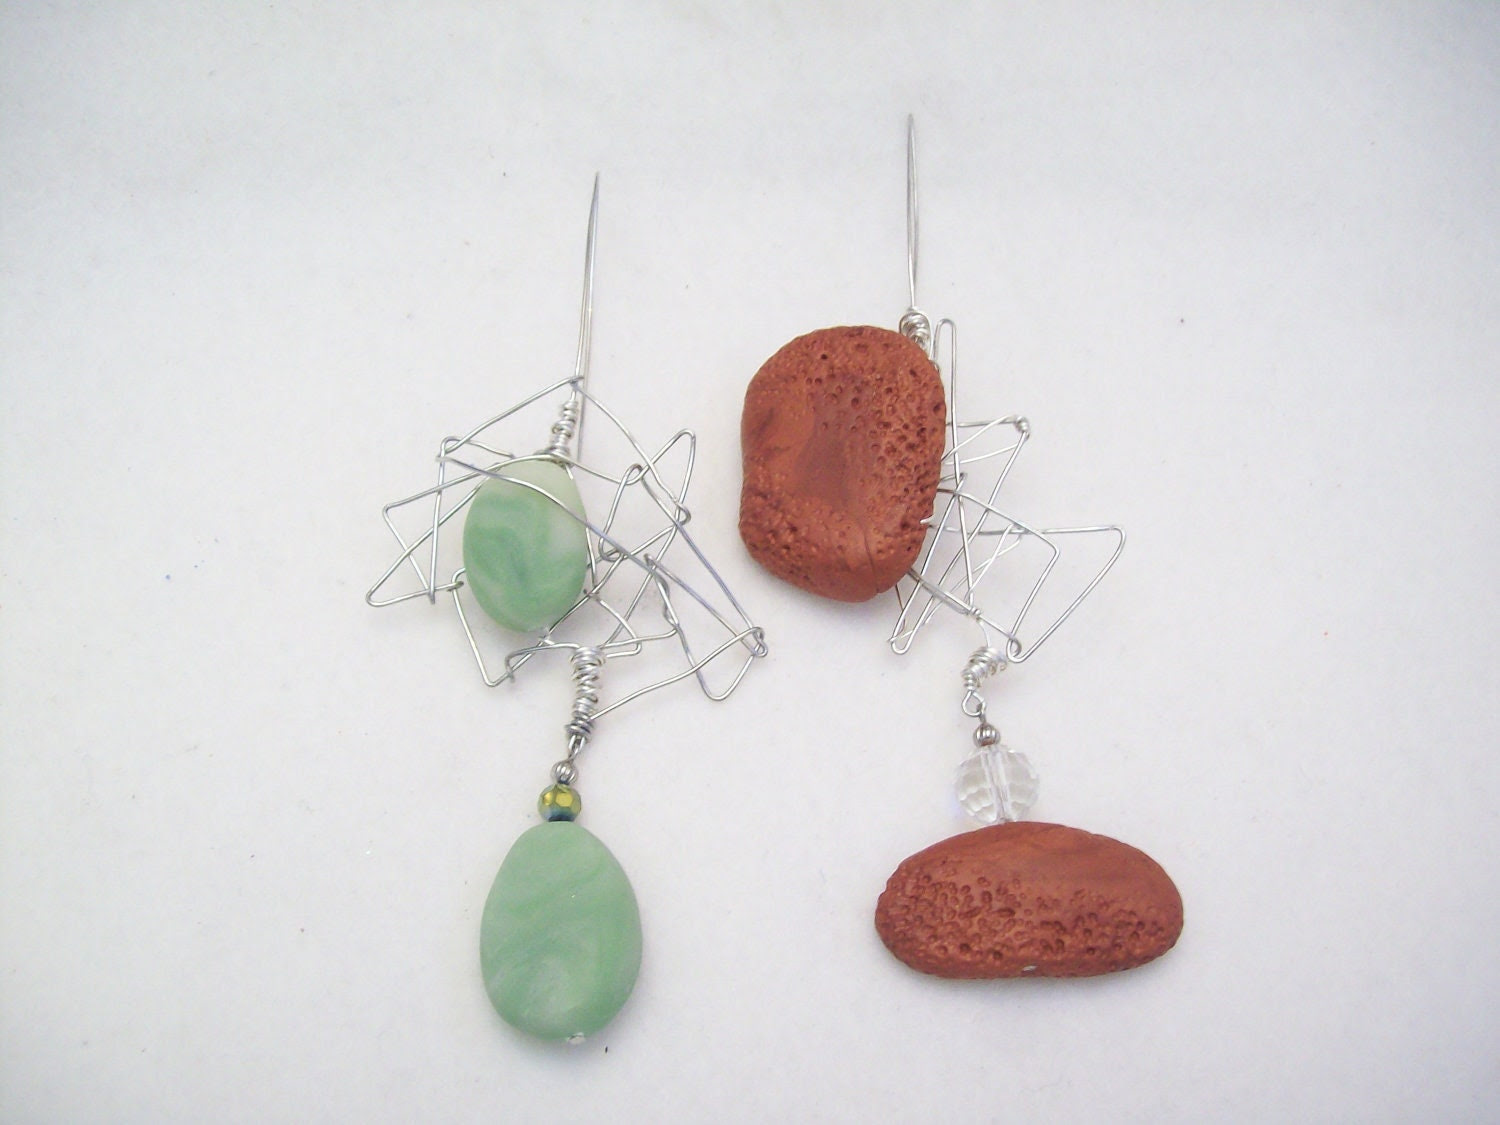 EARWIRE SOLO earring listing is for one